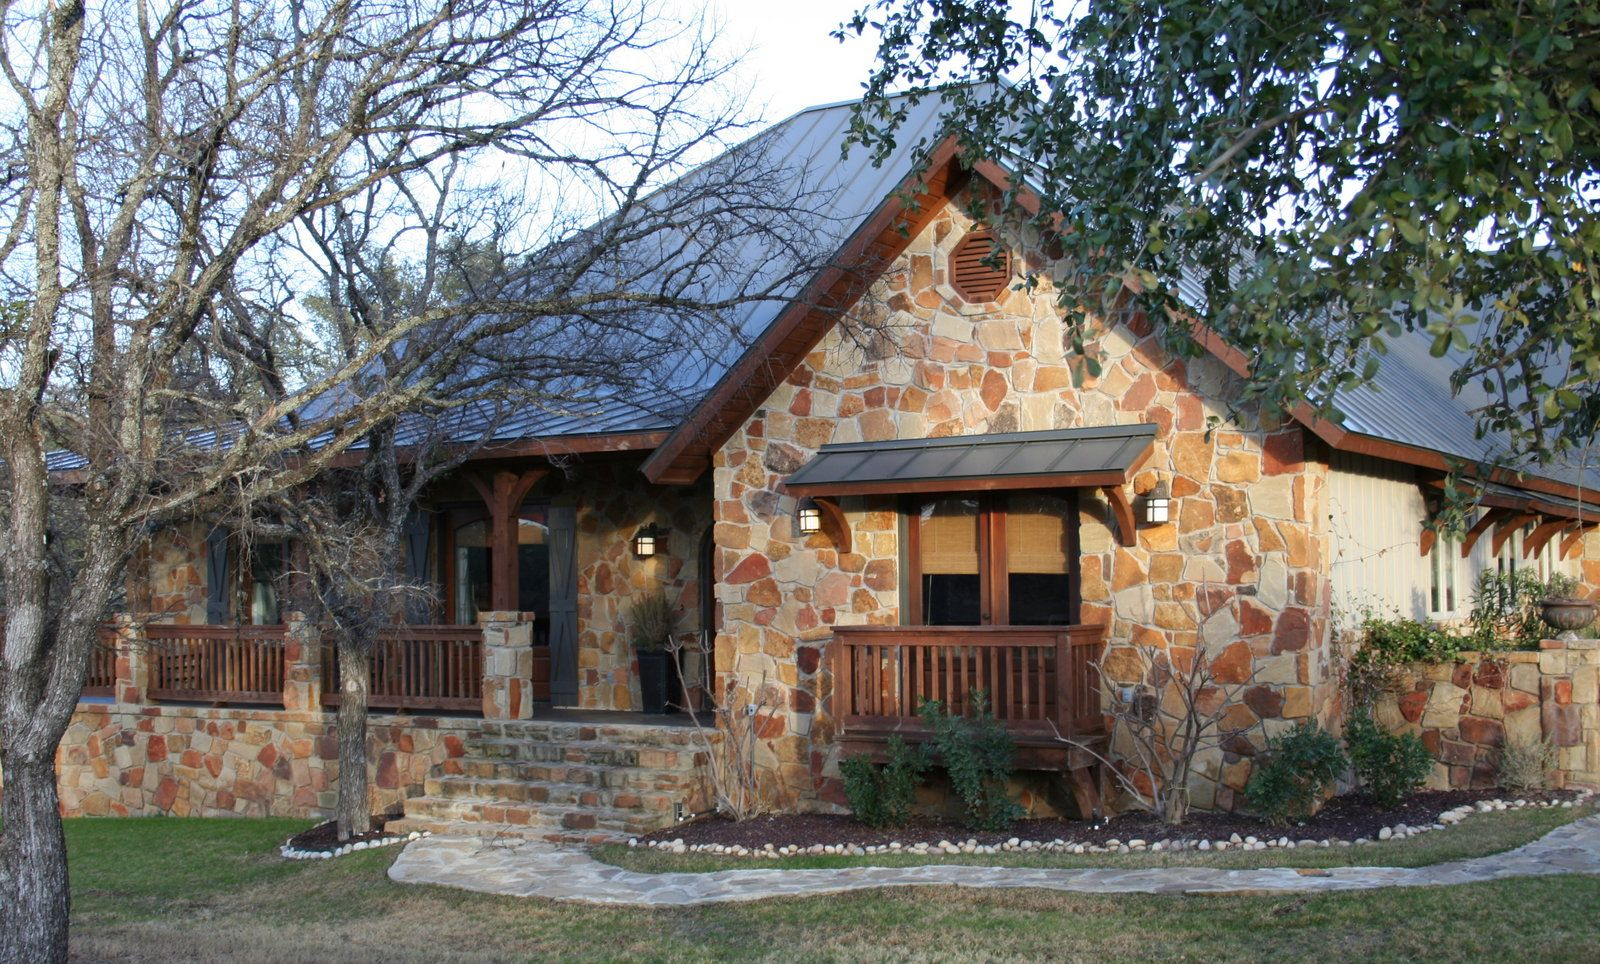 Pin by kim delosier on oklahoma stone cottages pinterest Building a house in oklahoma